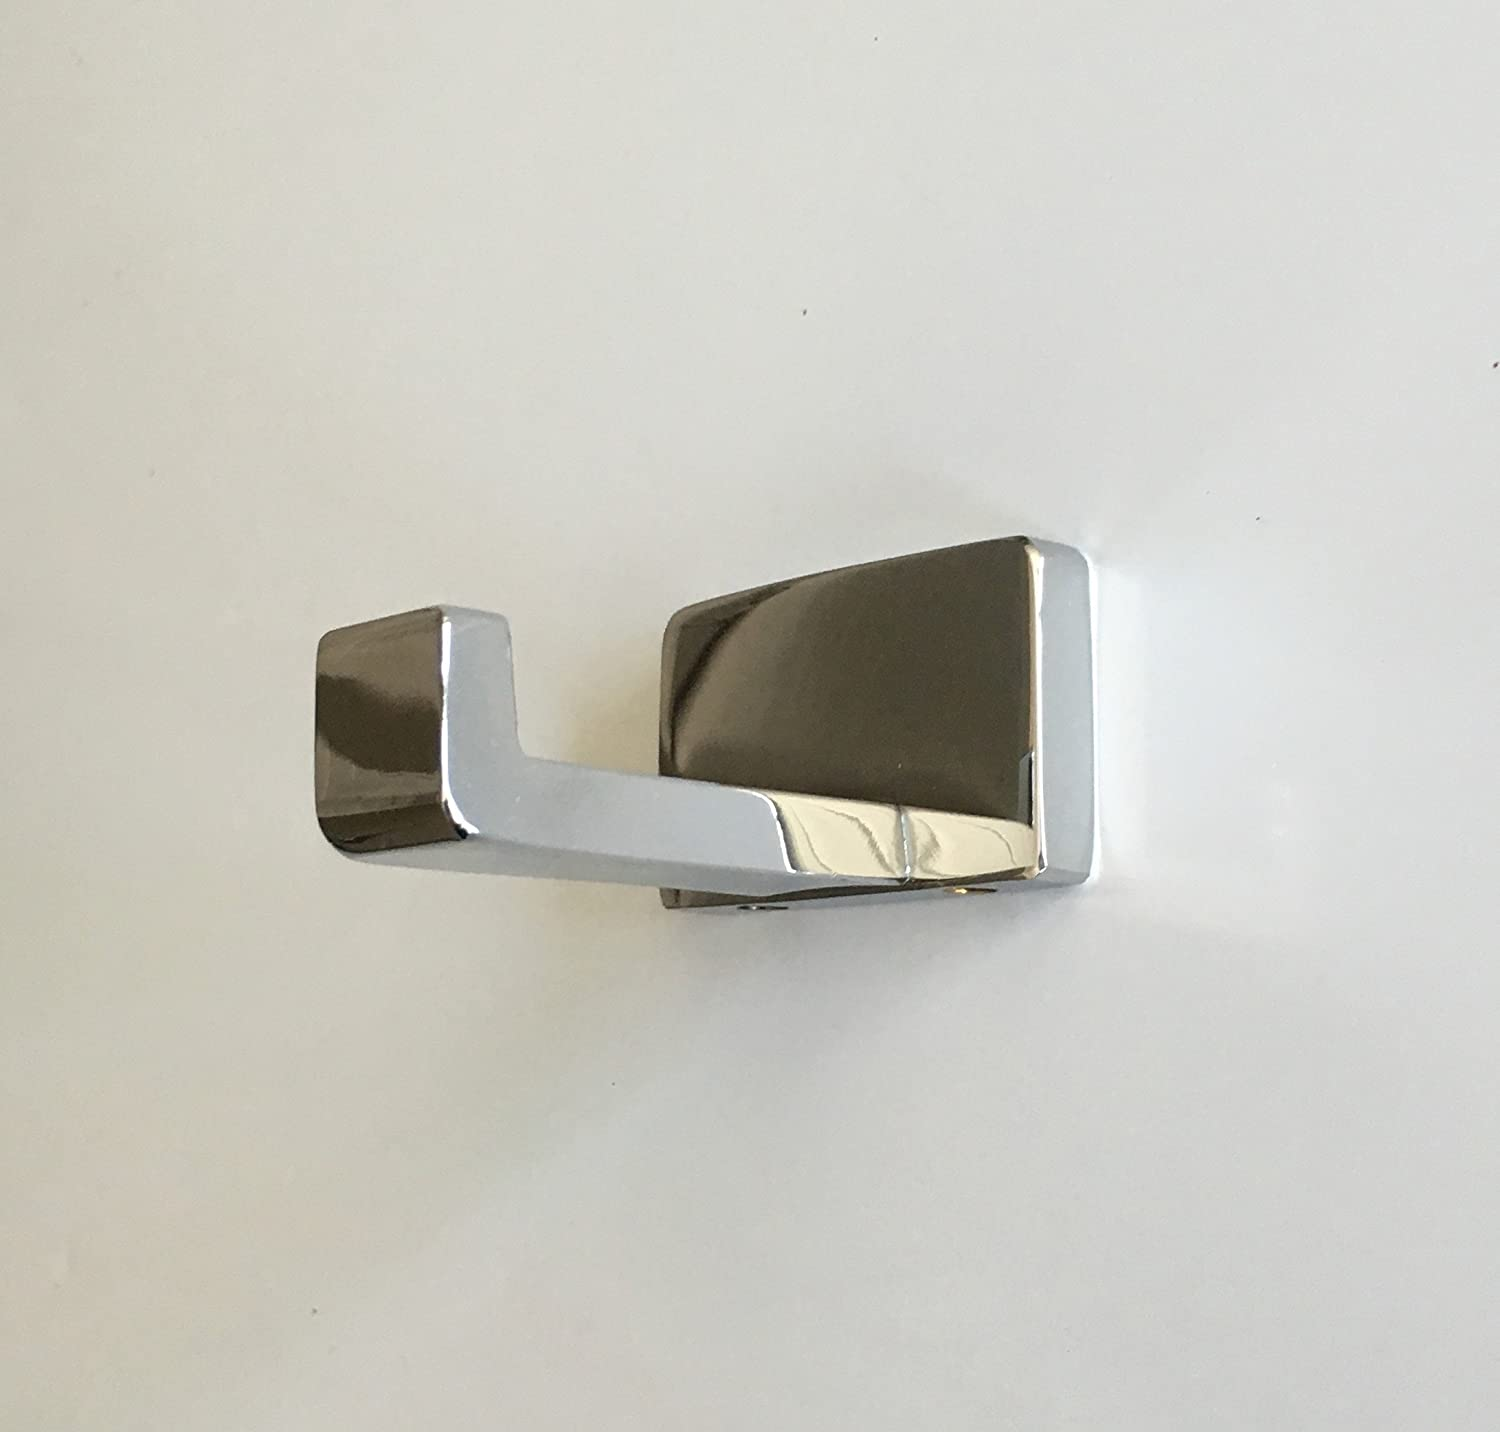 Modern Hardware High Polished Chrome Solid Brass Single Towel Robe Hat Hook Bathroom Kitchen Heavy Duty Wall Mount RH